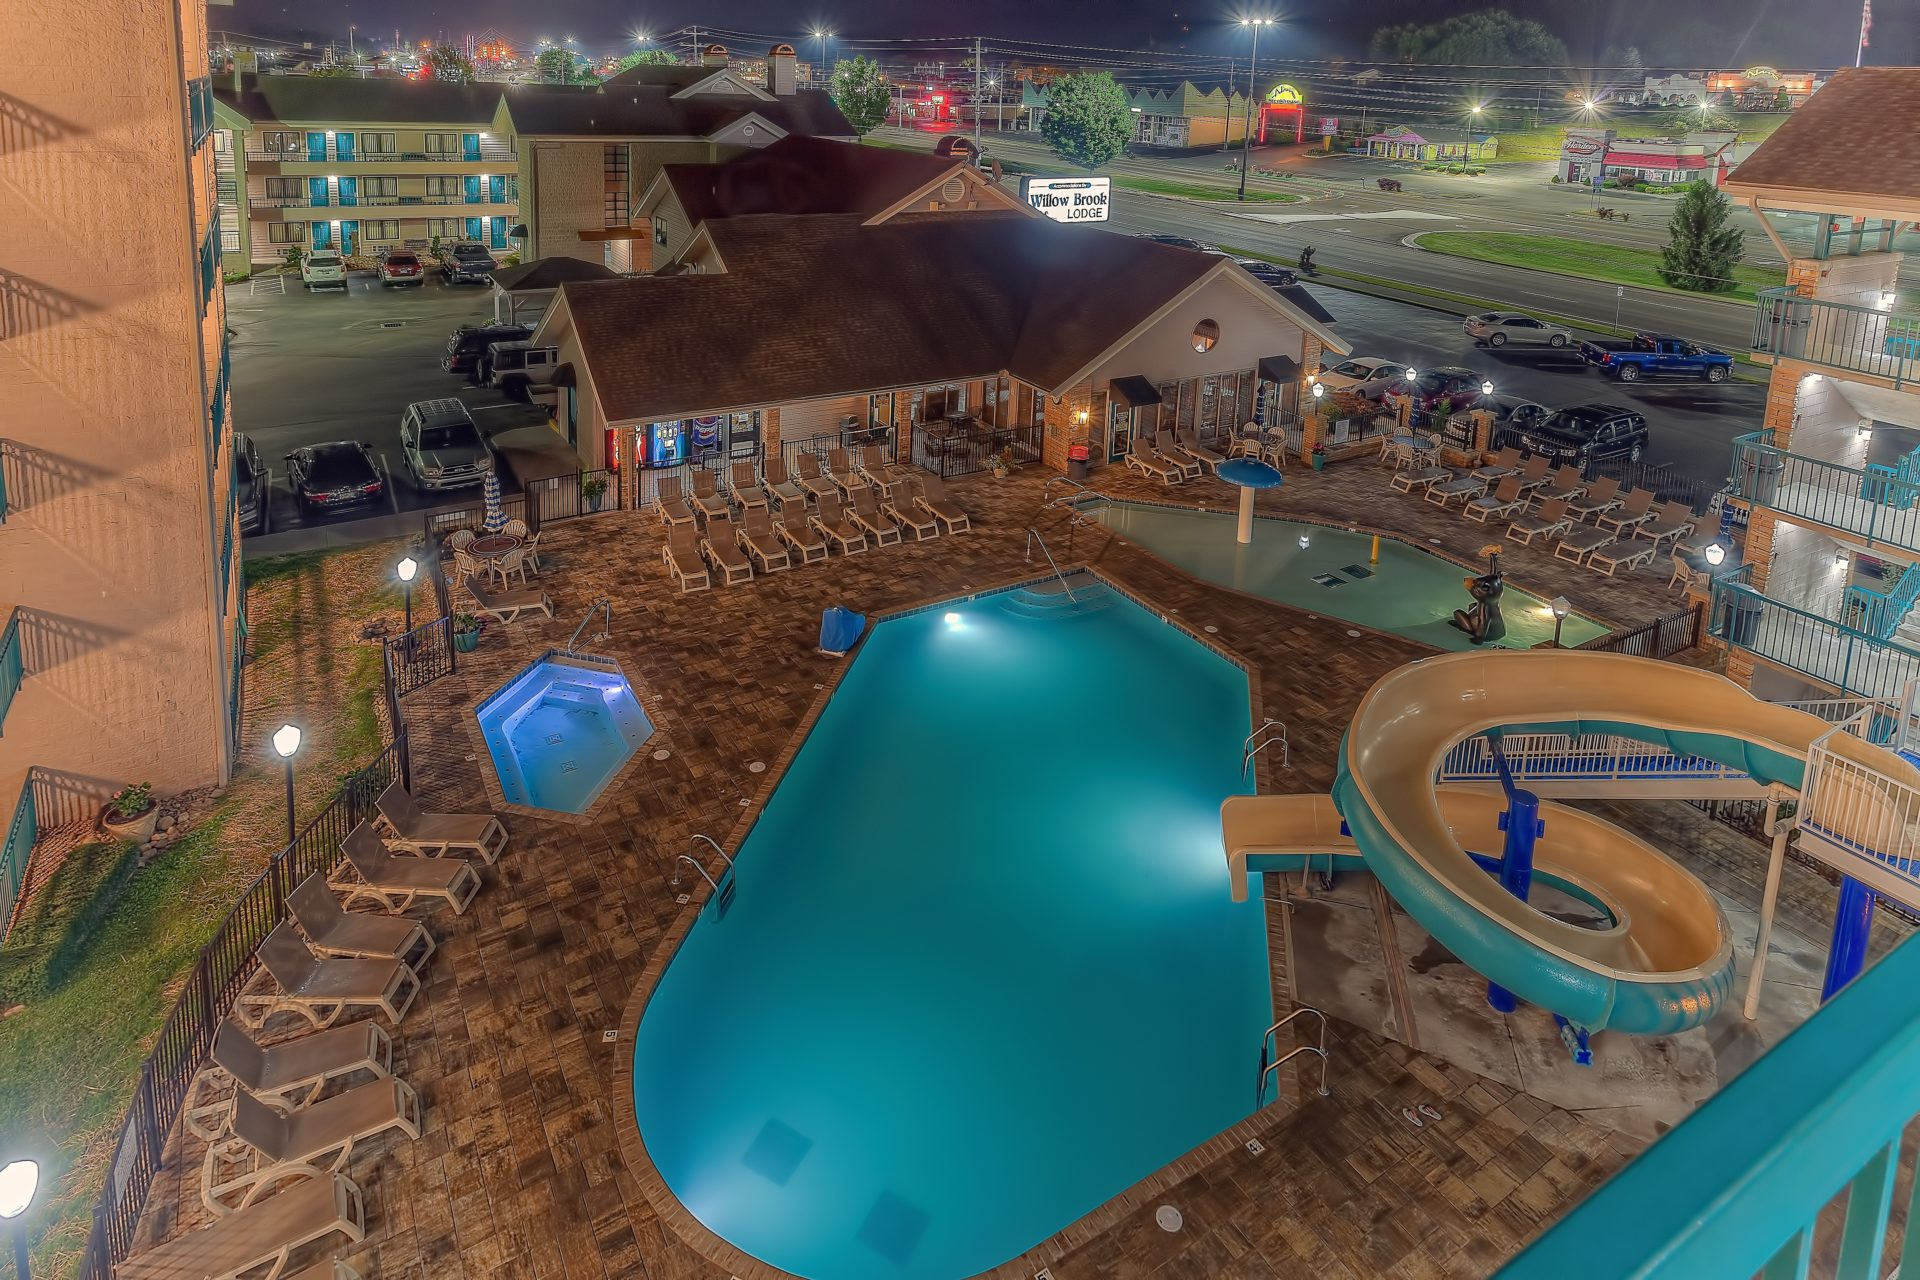 Downtown Pigeon Forge Hotels Willow Brook Lodge Outdoor Pool